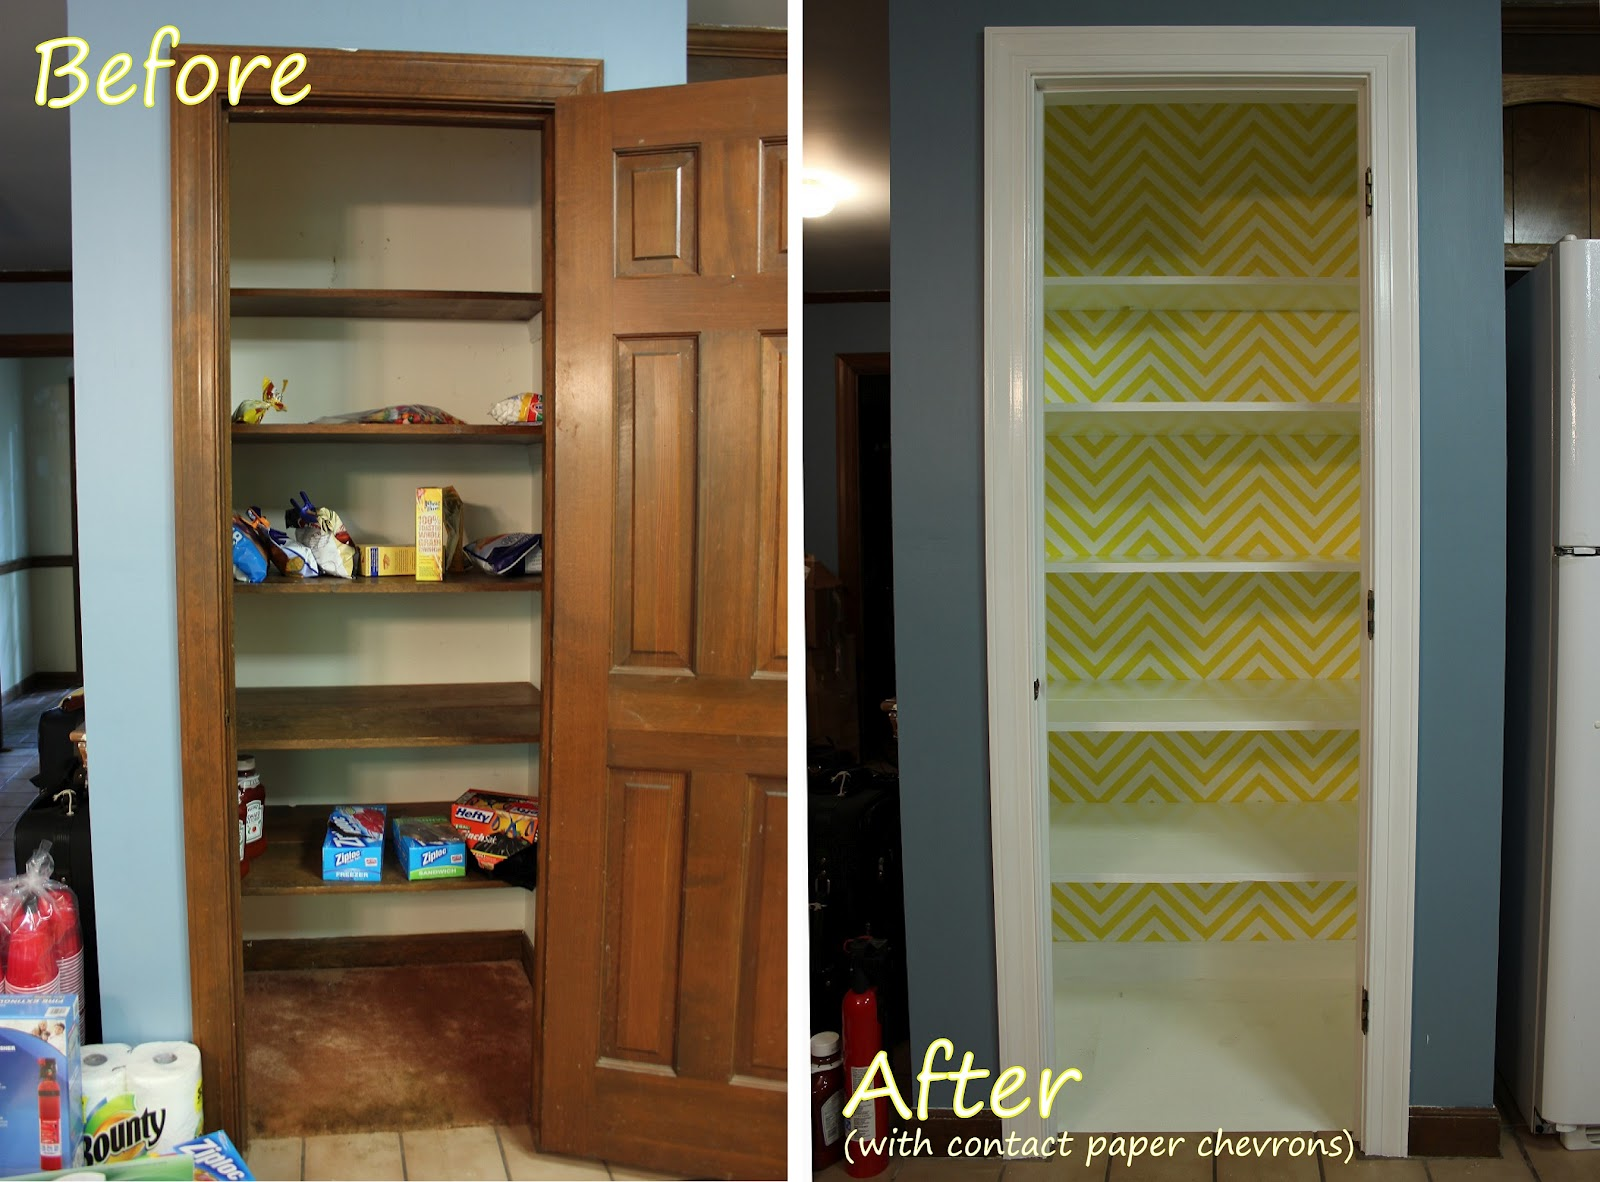 Contact Paper On Walls the handcrafted life*: a bright and sunny pantry makeover